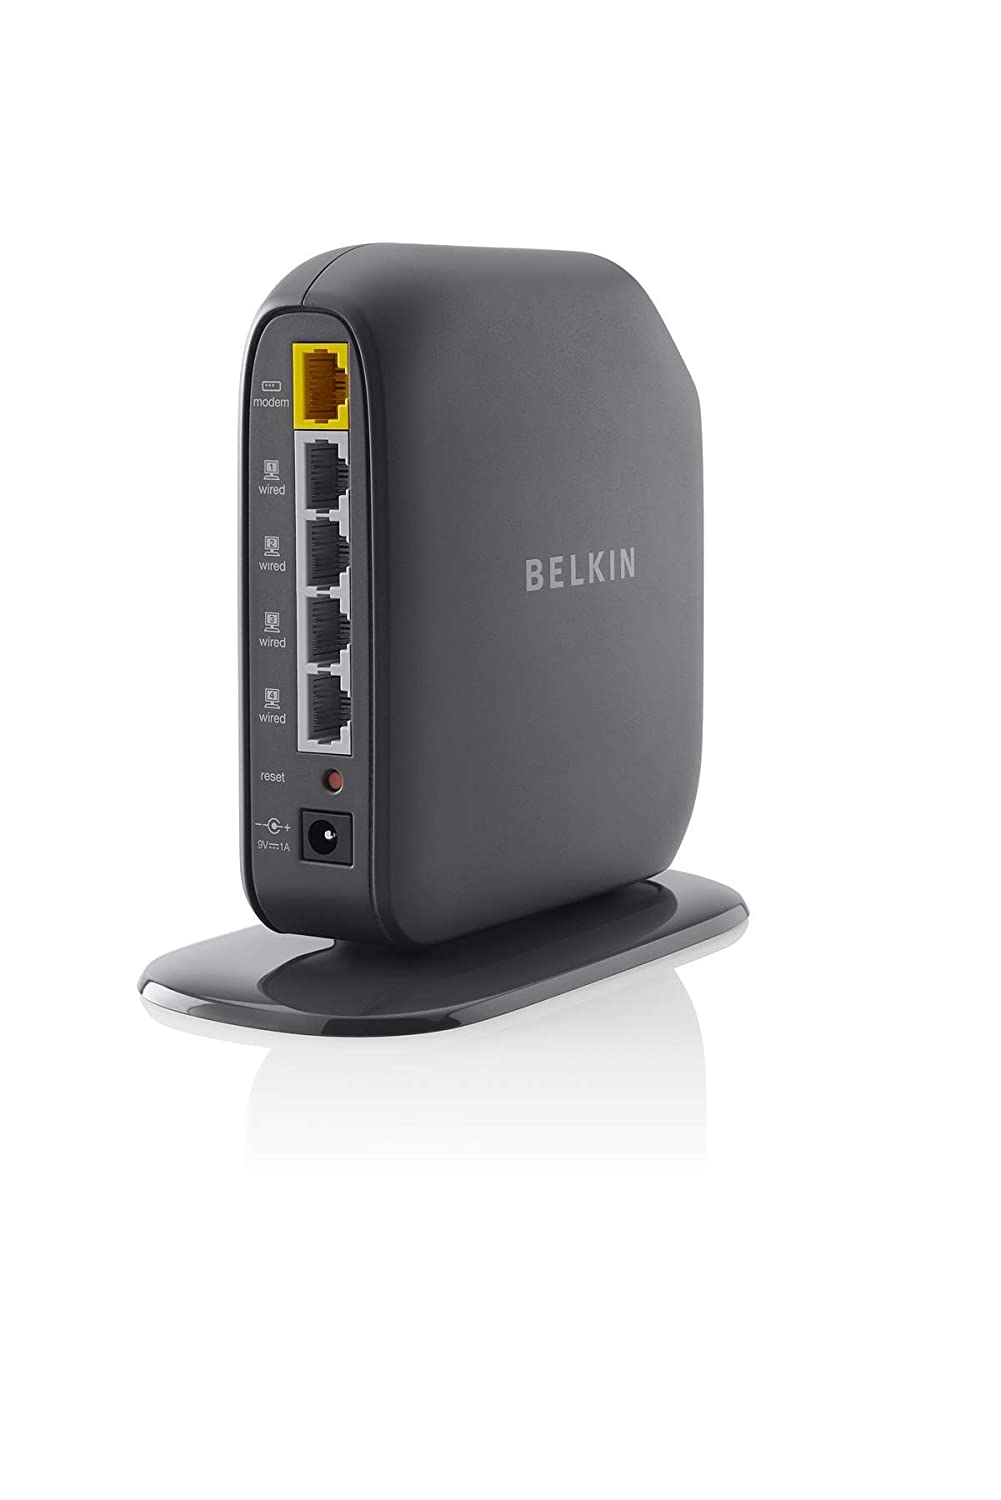 Amazon.com: Belkin Wireless Surf Router (F7D2301): Electronics